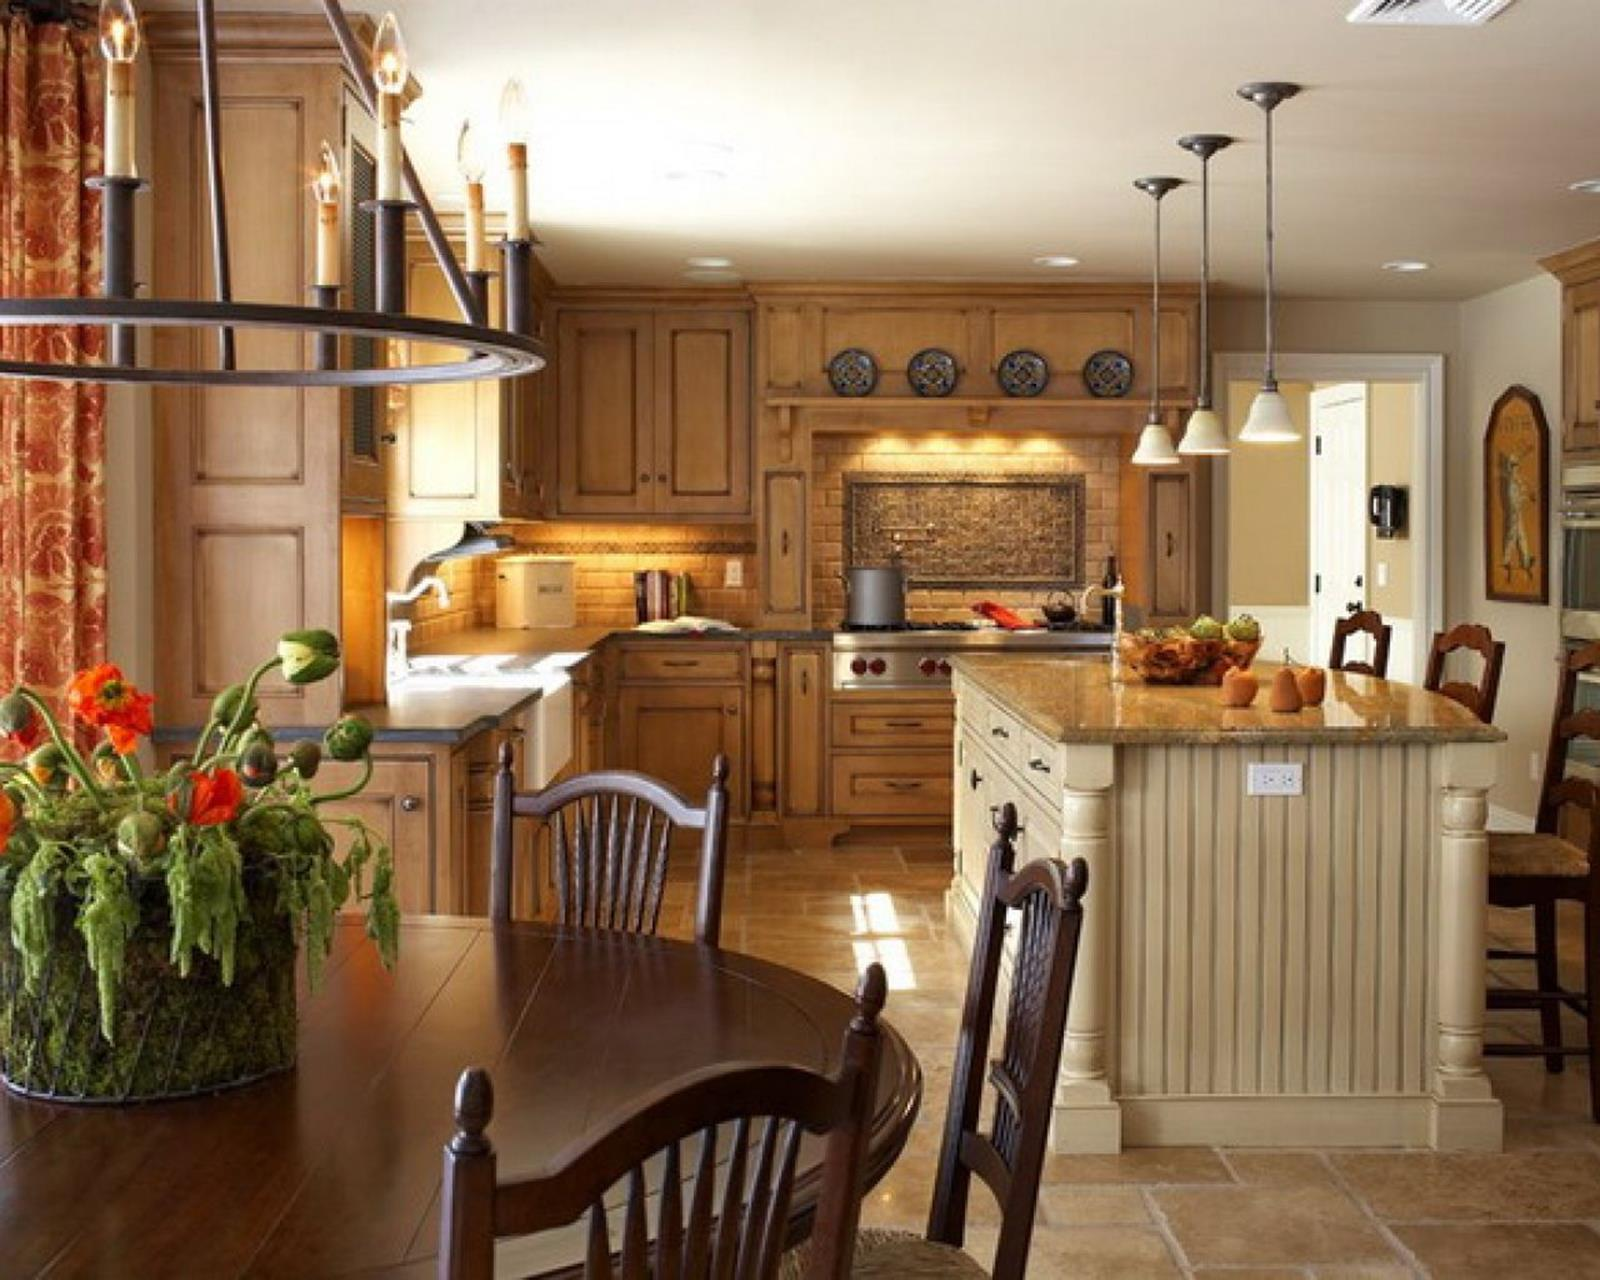 Country Kitchen Accessories and Decor Ideas 15